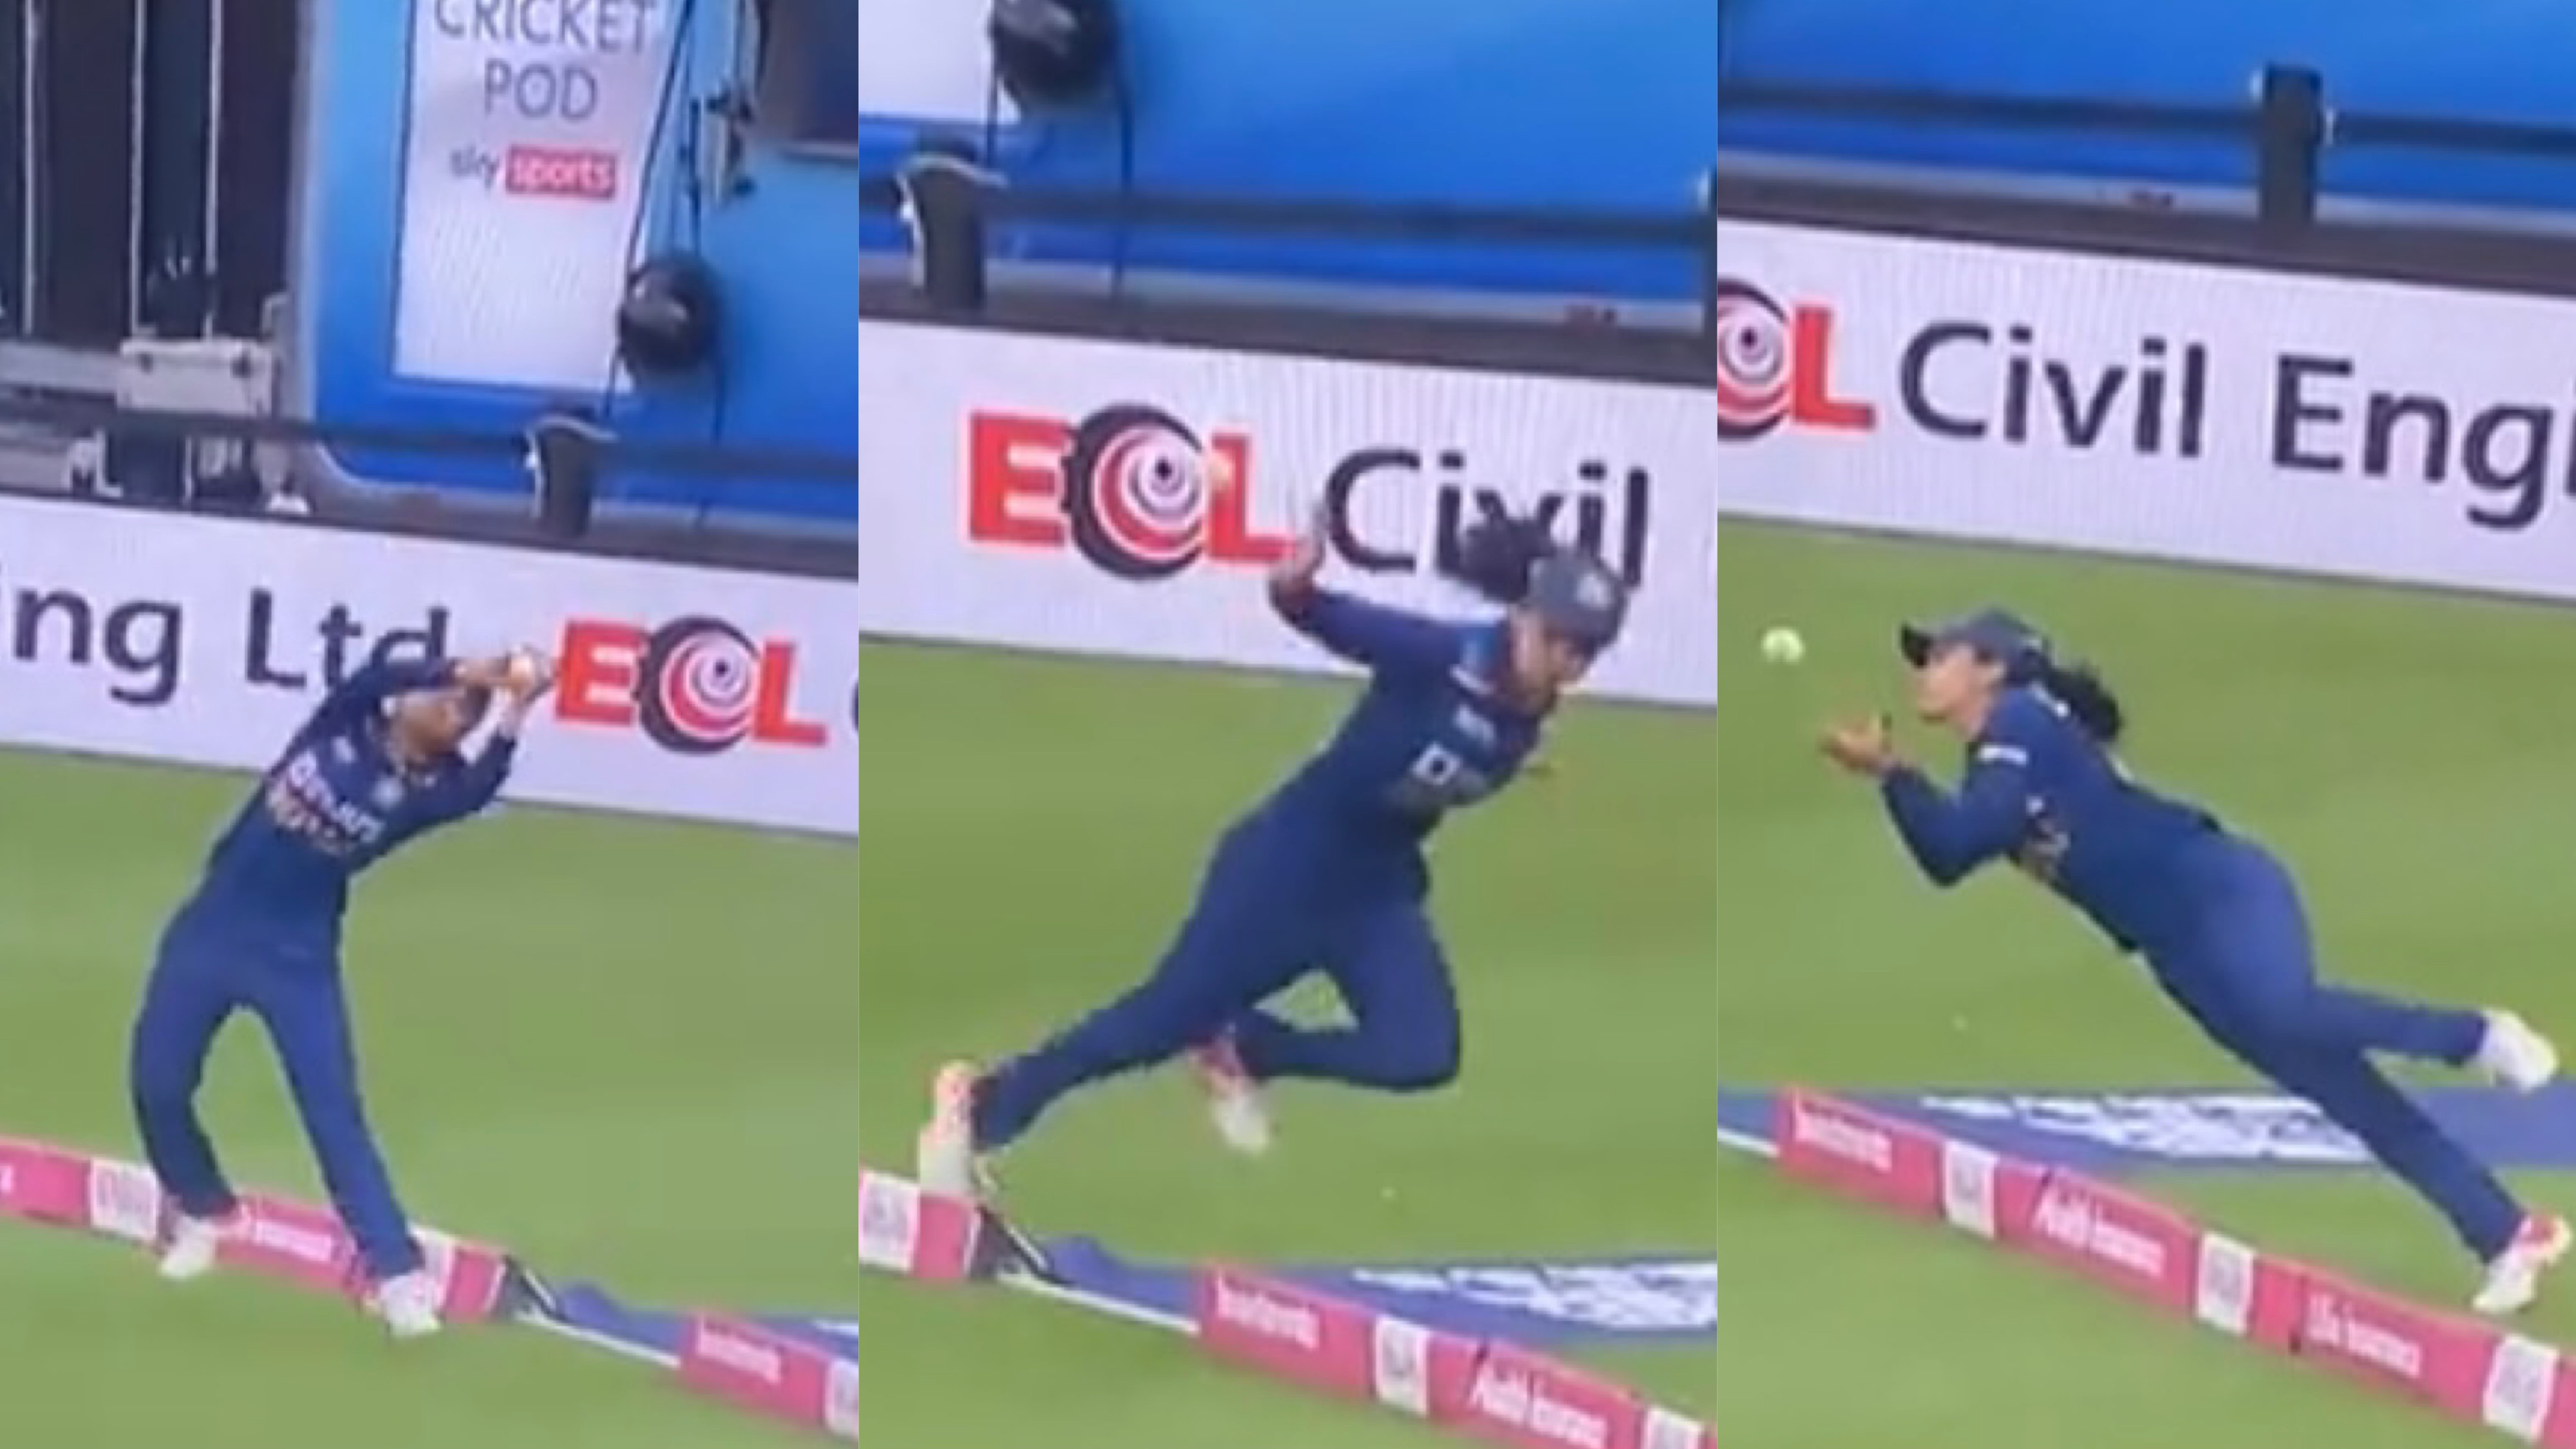 ENGW v INDW 2021: WATCH - Harleen Deol plucks one of the great catches in 1st T20I